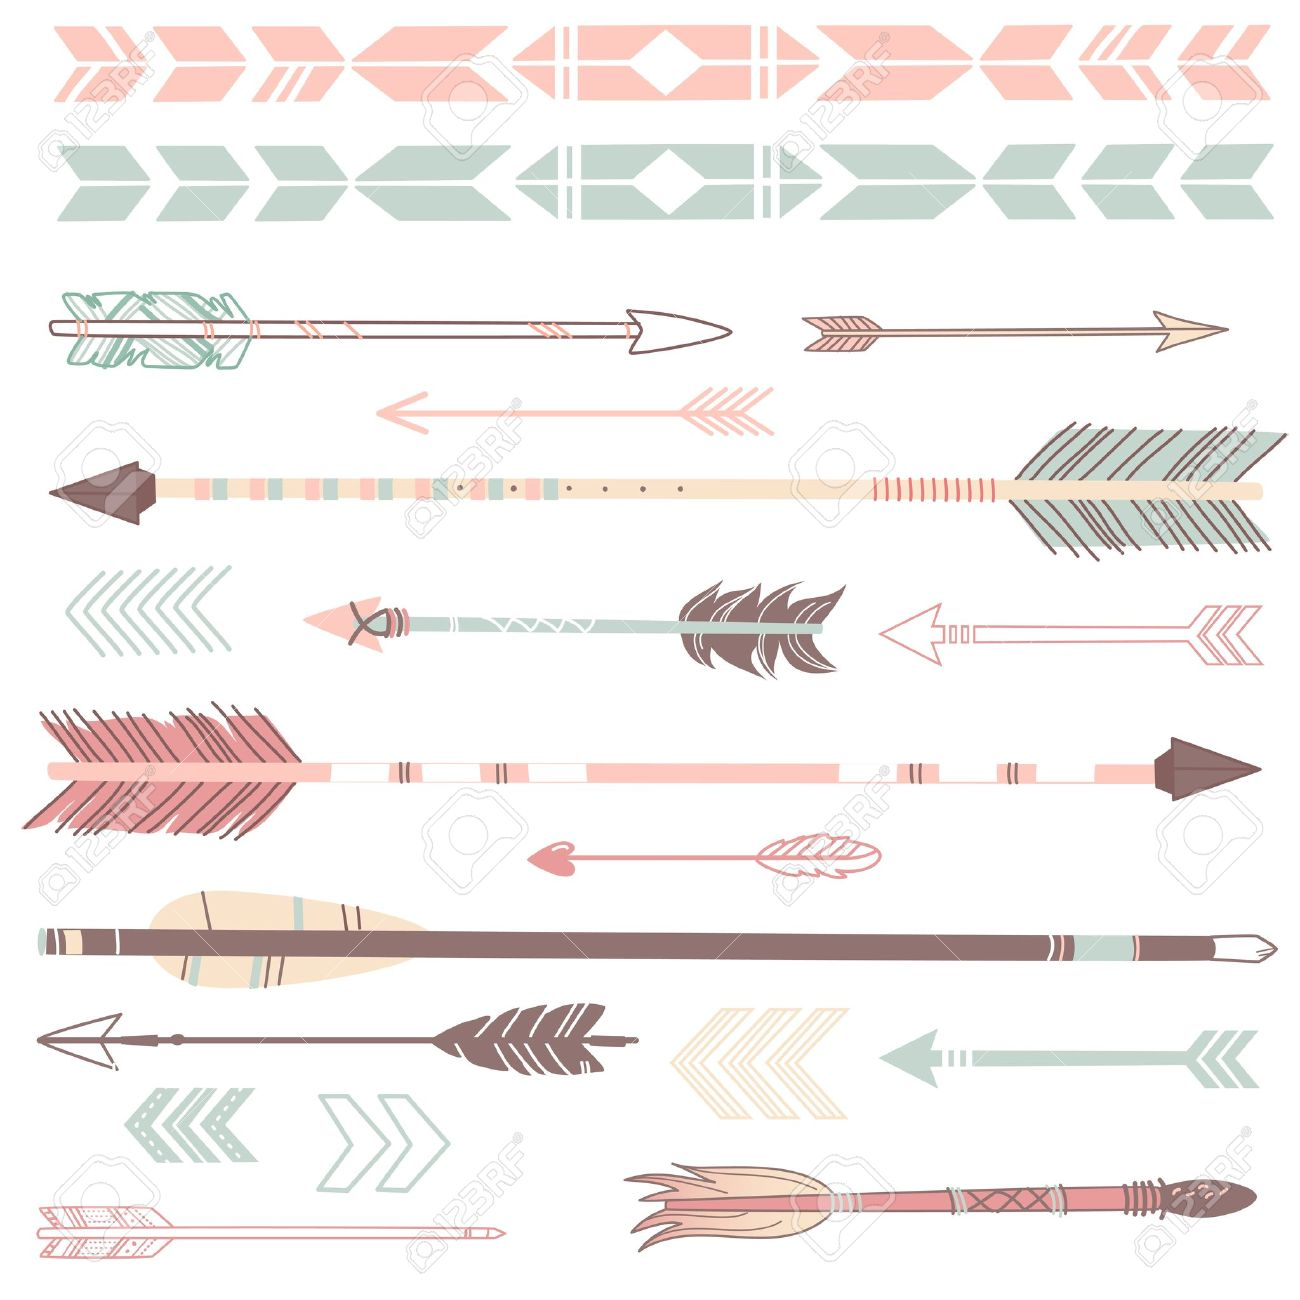 Cute arrow jpg clipart clip freeuse Cute bow arrow jpg clipart - ClipartFox clip freeuse